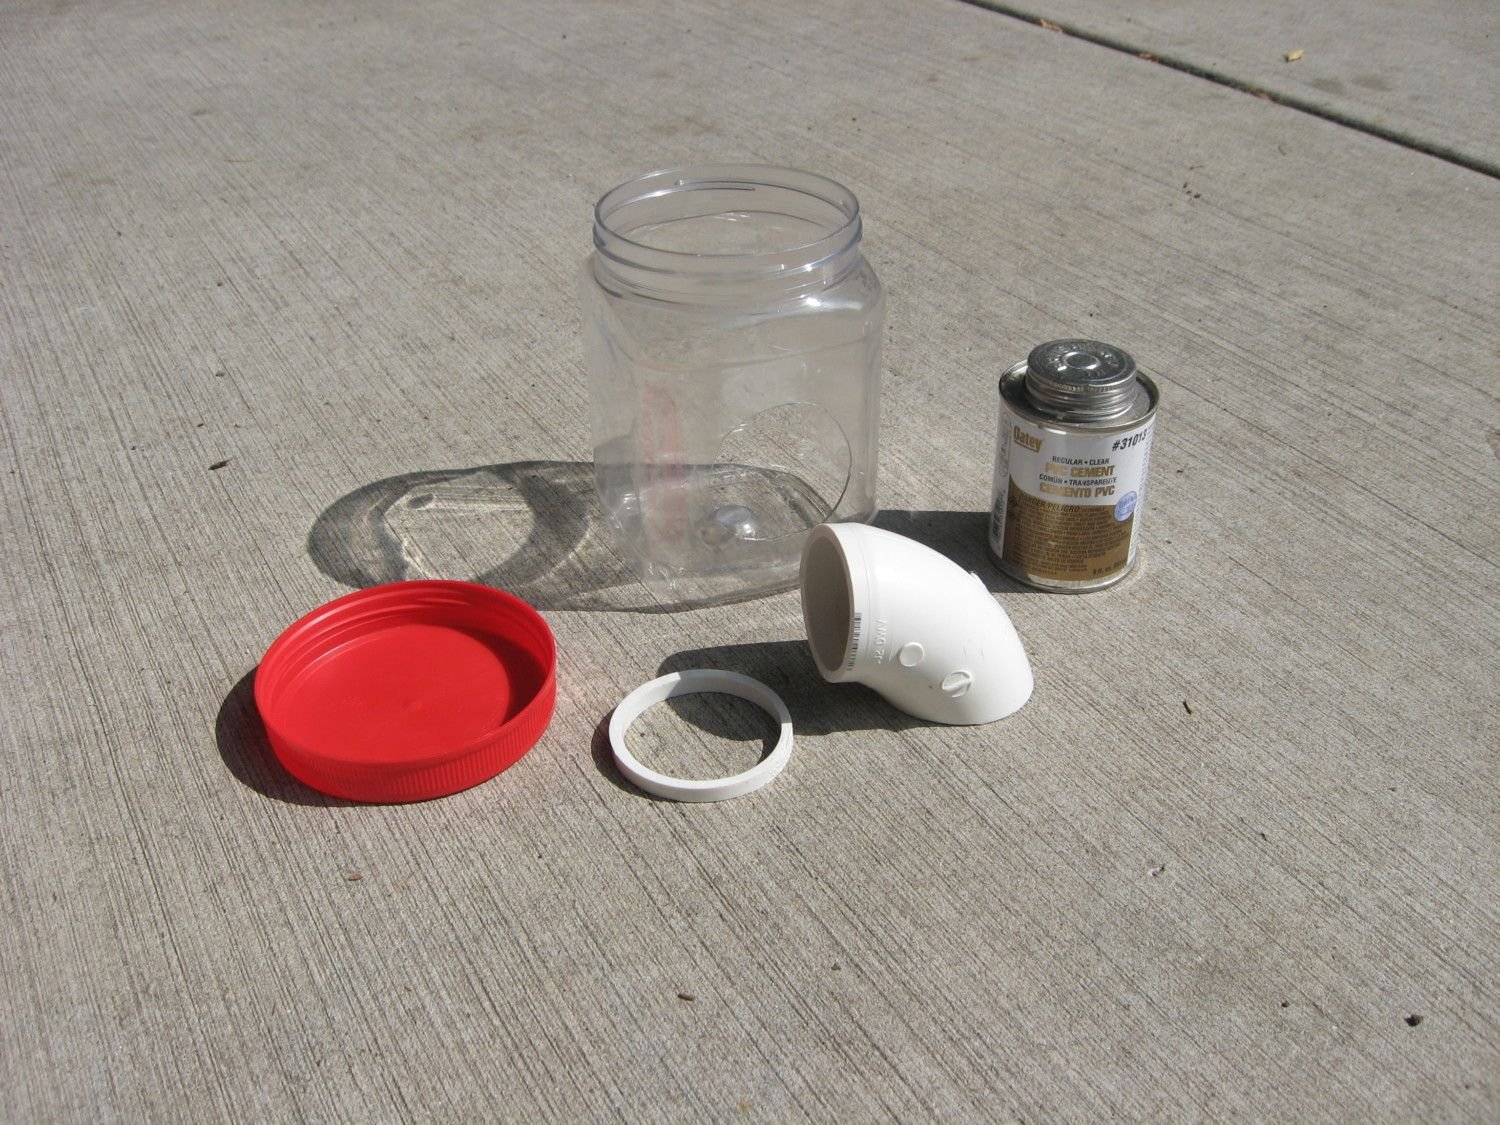 Materials for test chick feeder